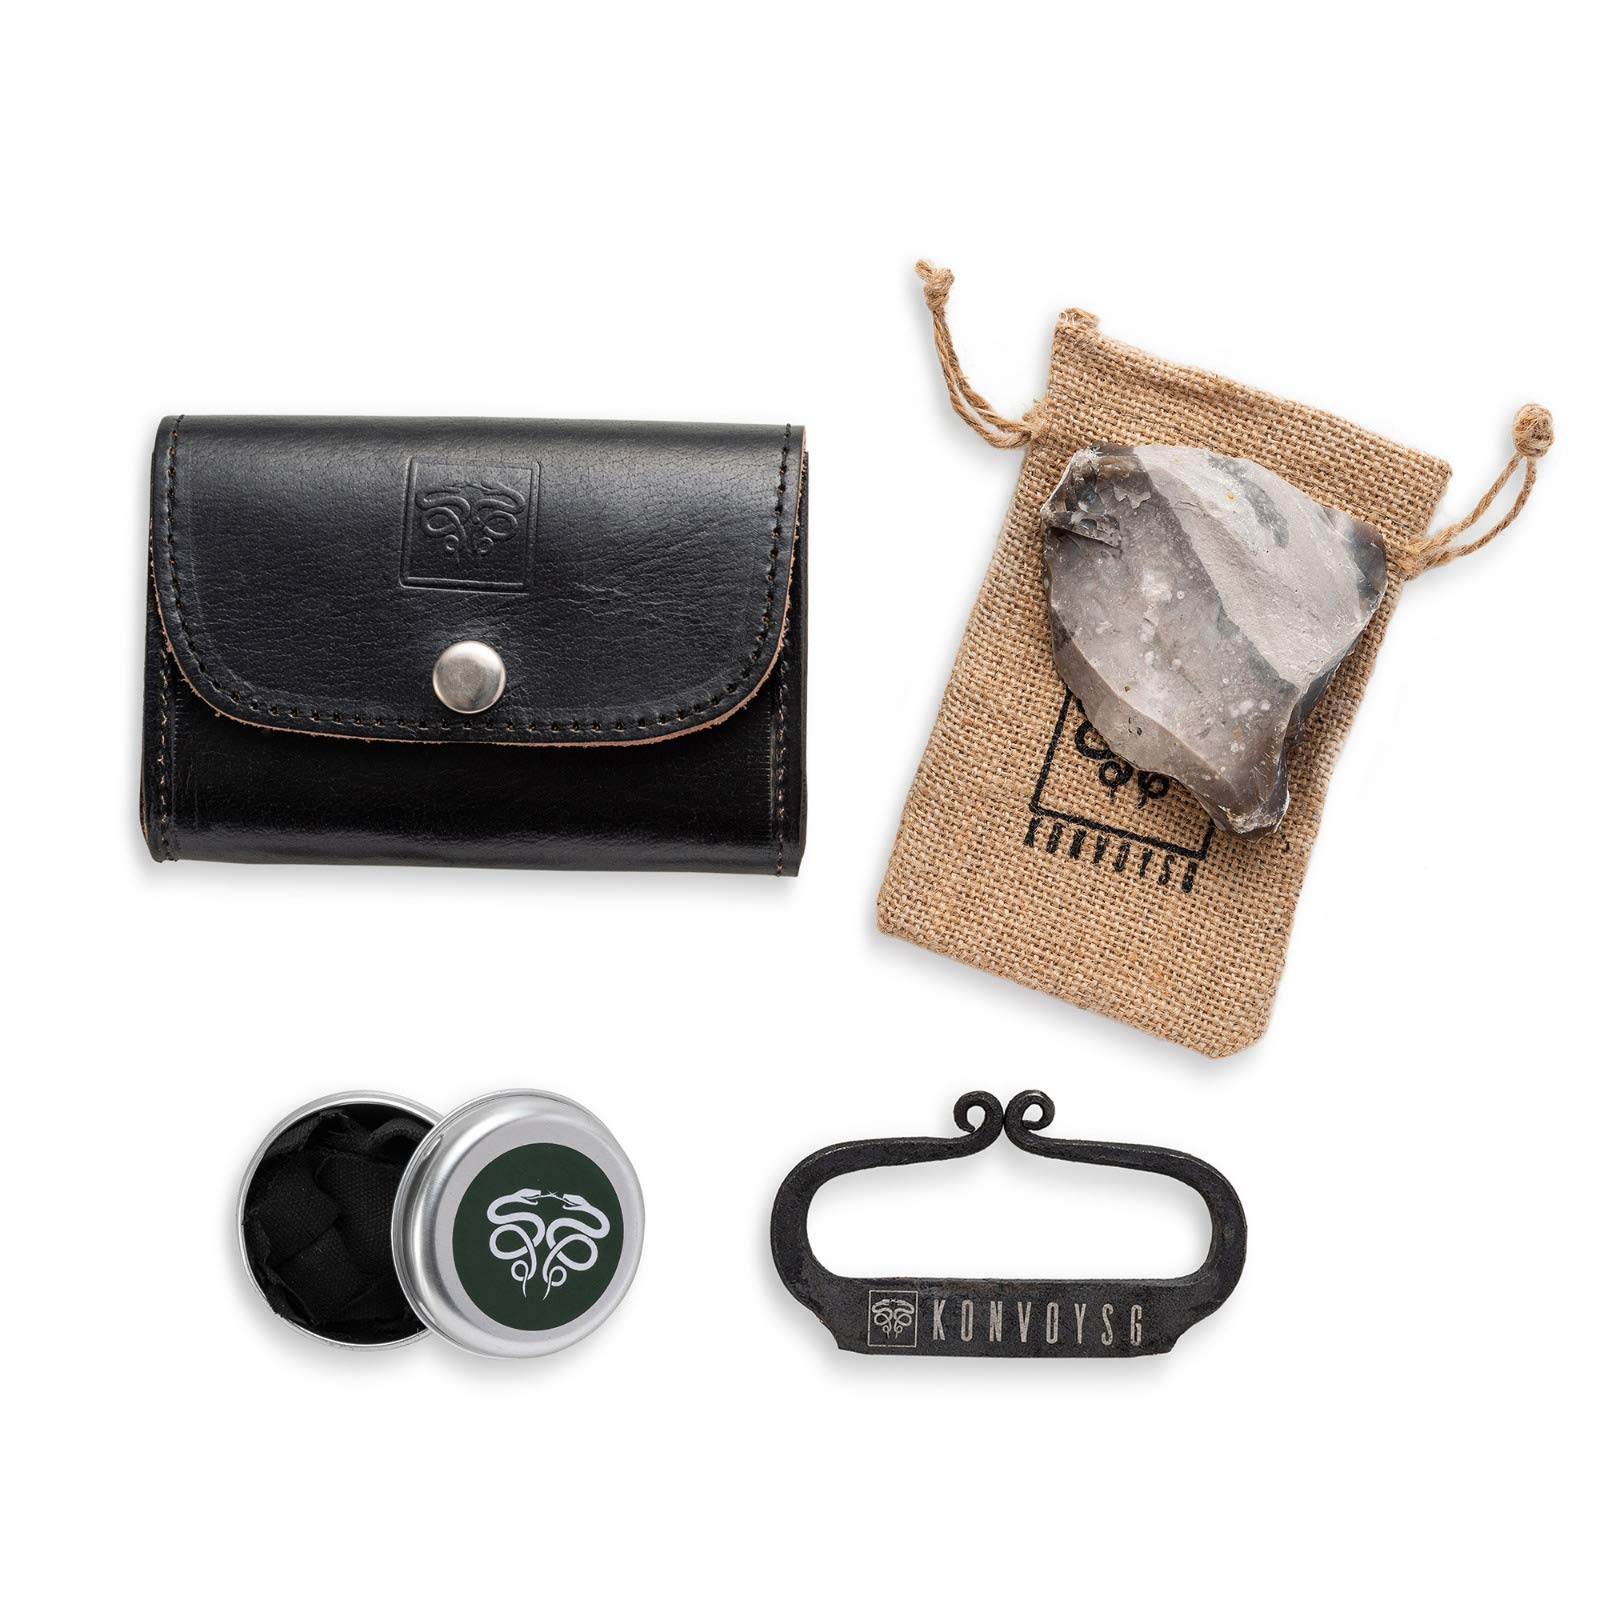 KonvoySG Flint and Steel Kit. Fire Striker, English Flint Stone & Char Cloth Traditional Hand Forged Fire Starter with a Leather Gift Pouch and Emergency Tinder Jute Bag (Black)